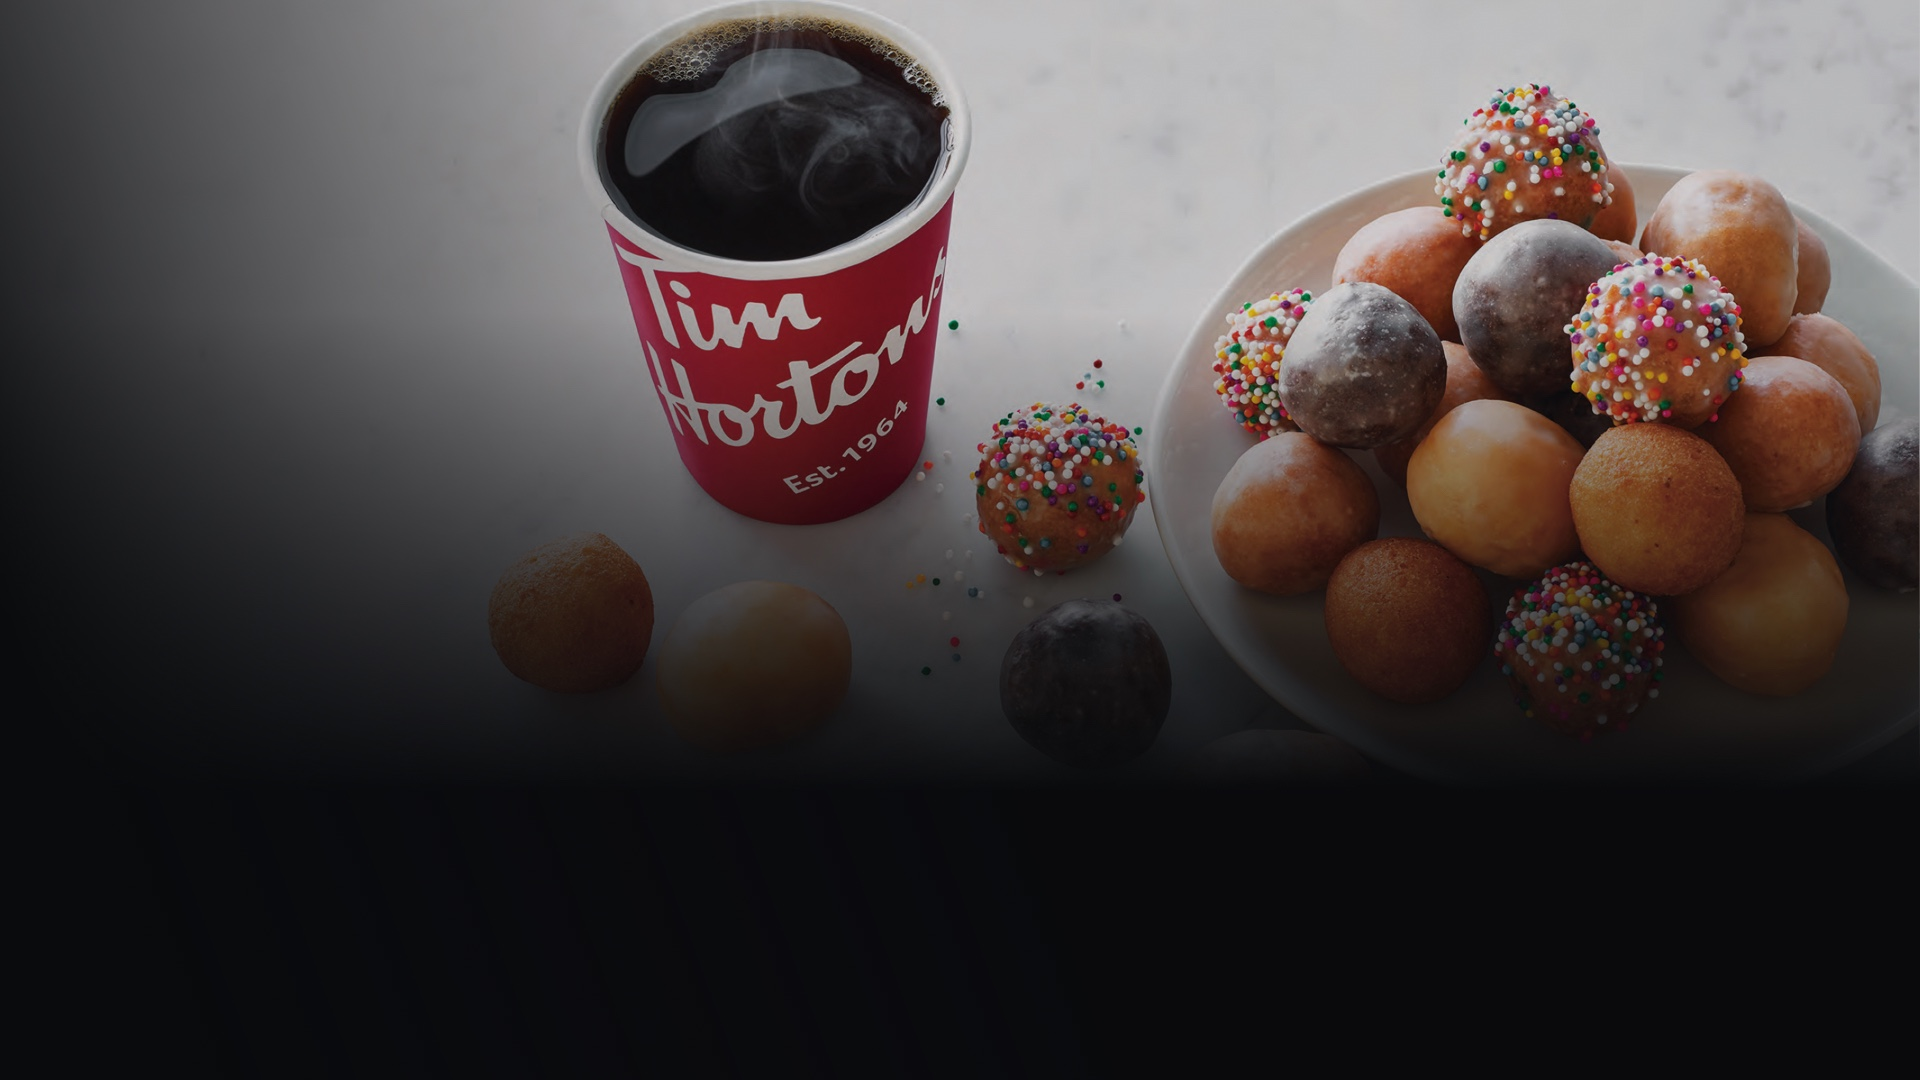 Tim Hortons - Roll Up